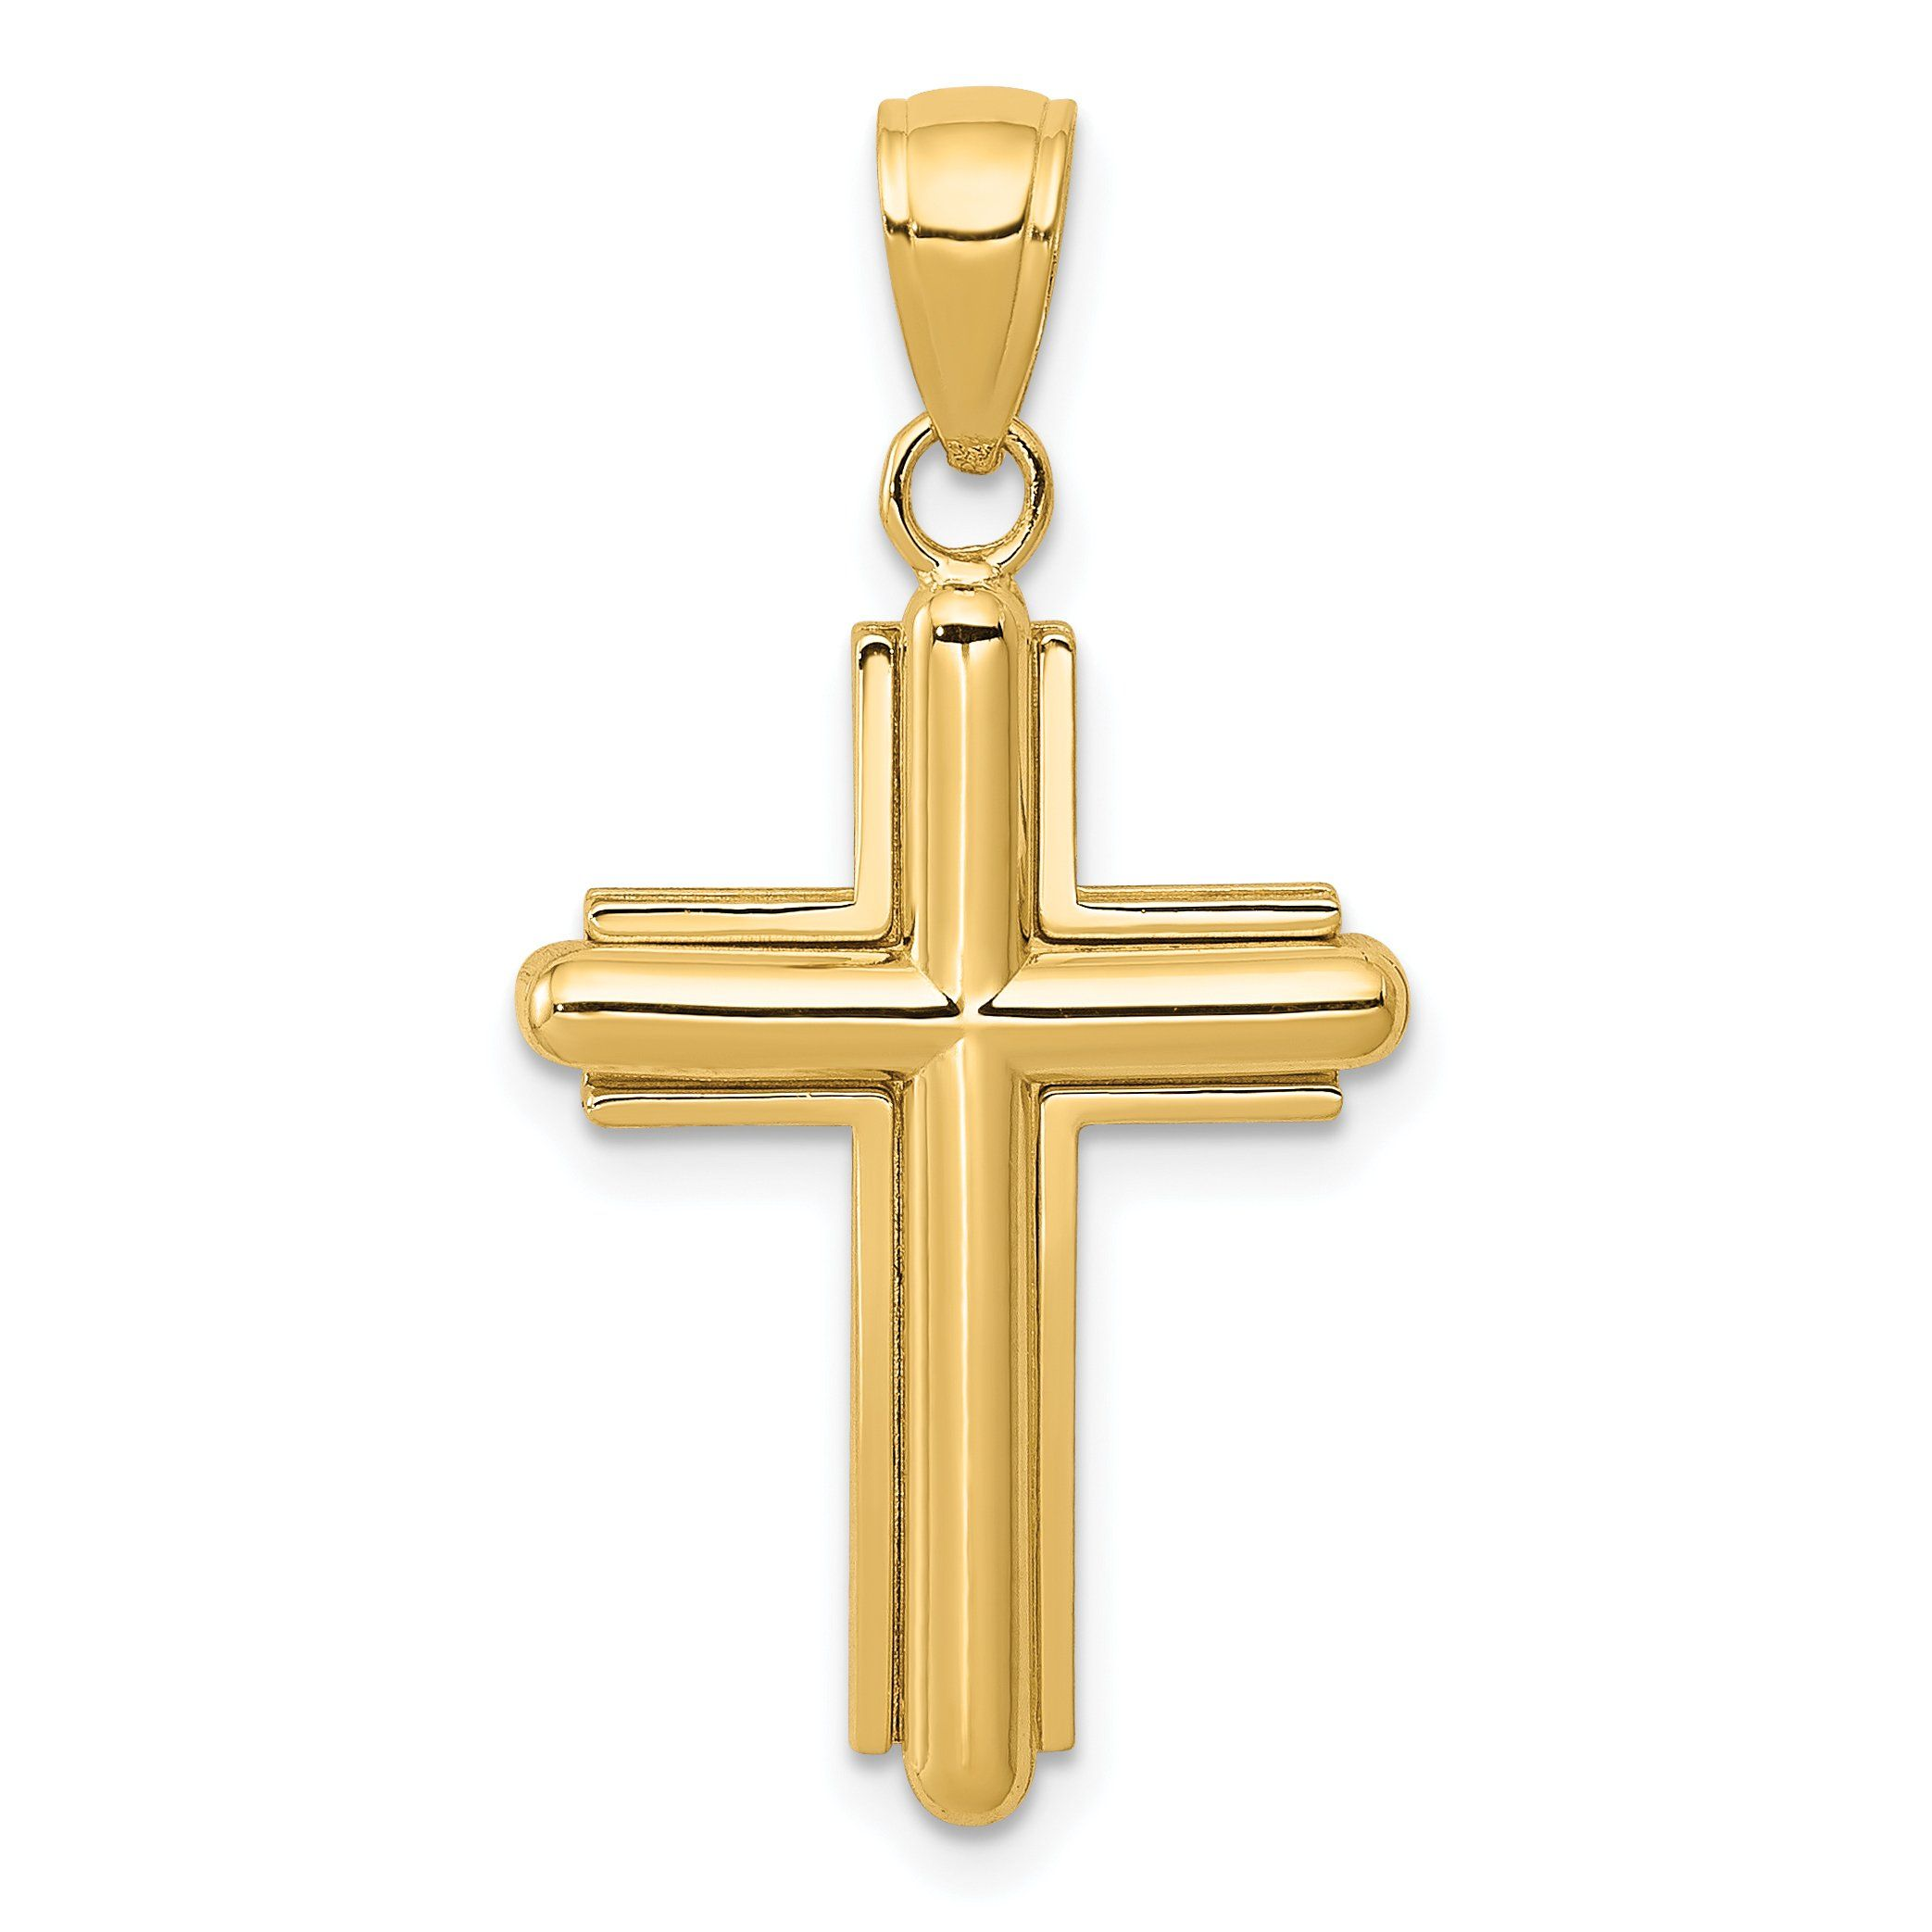 Silver Yellow Plated Cross Charm 33mm